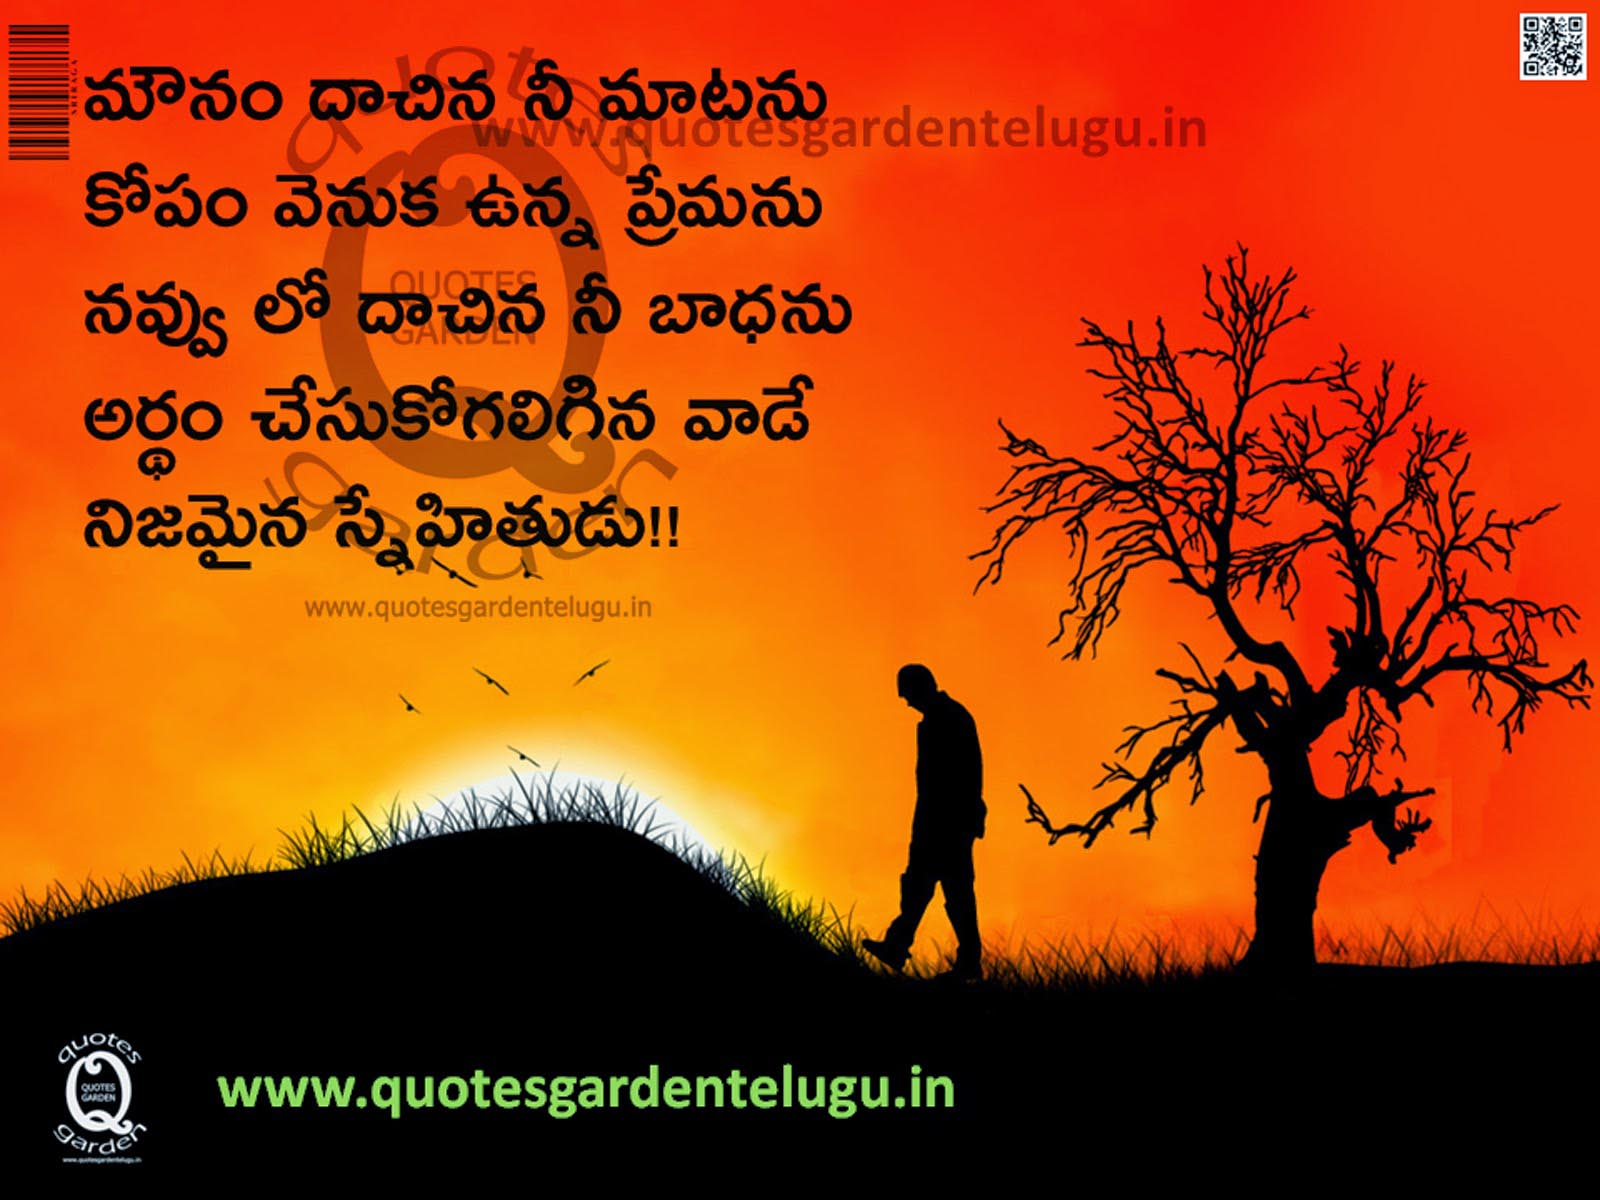 Best Telugu Friendship Quotes Quotes Garden Telugu Telugu Quotes